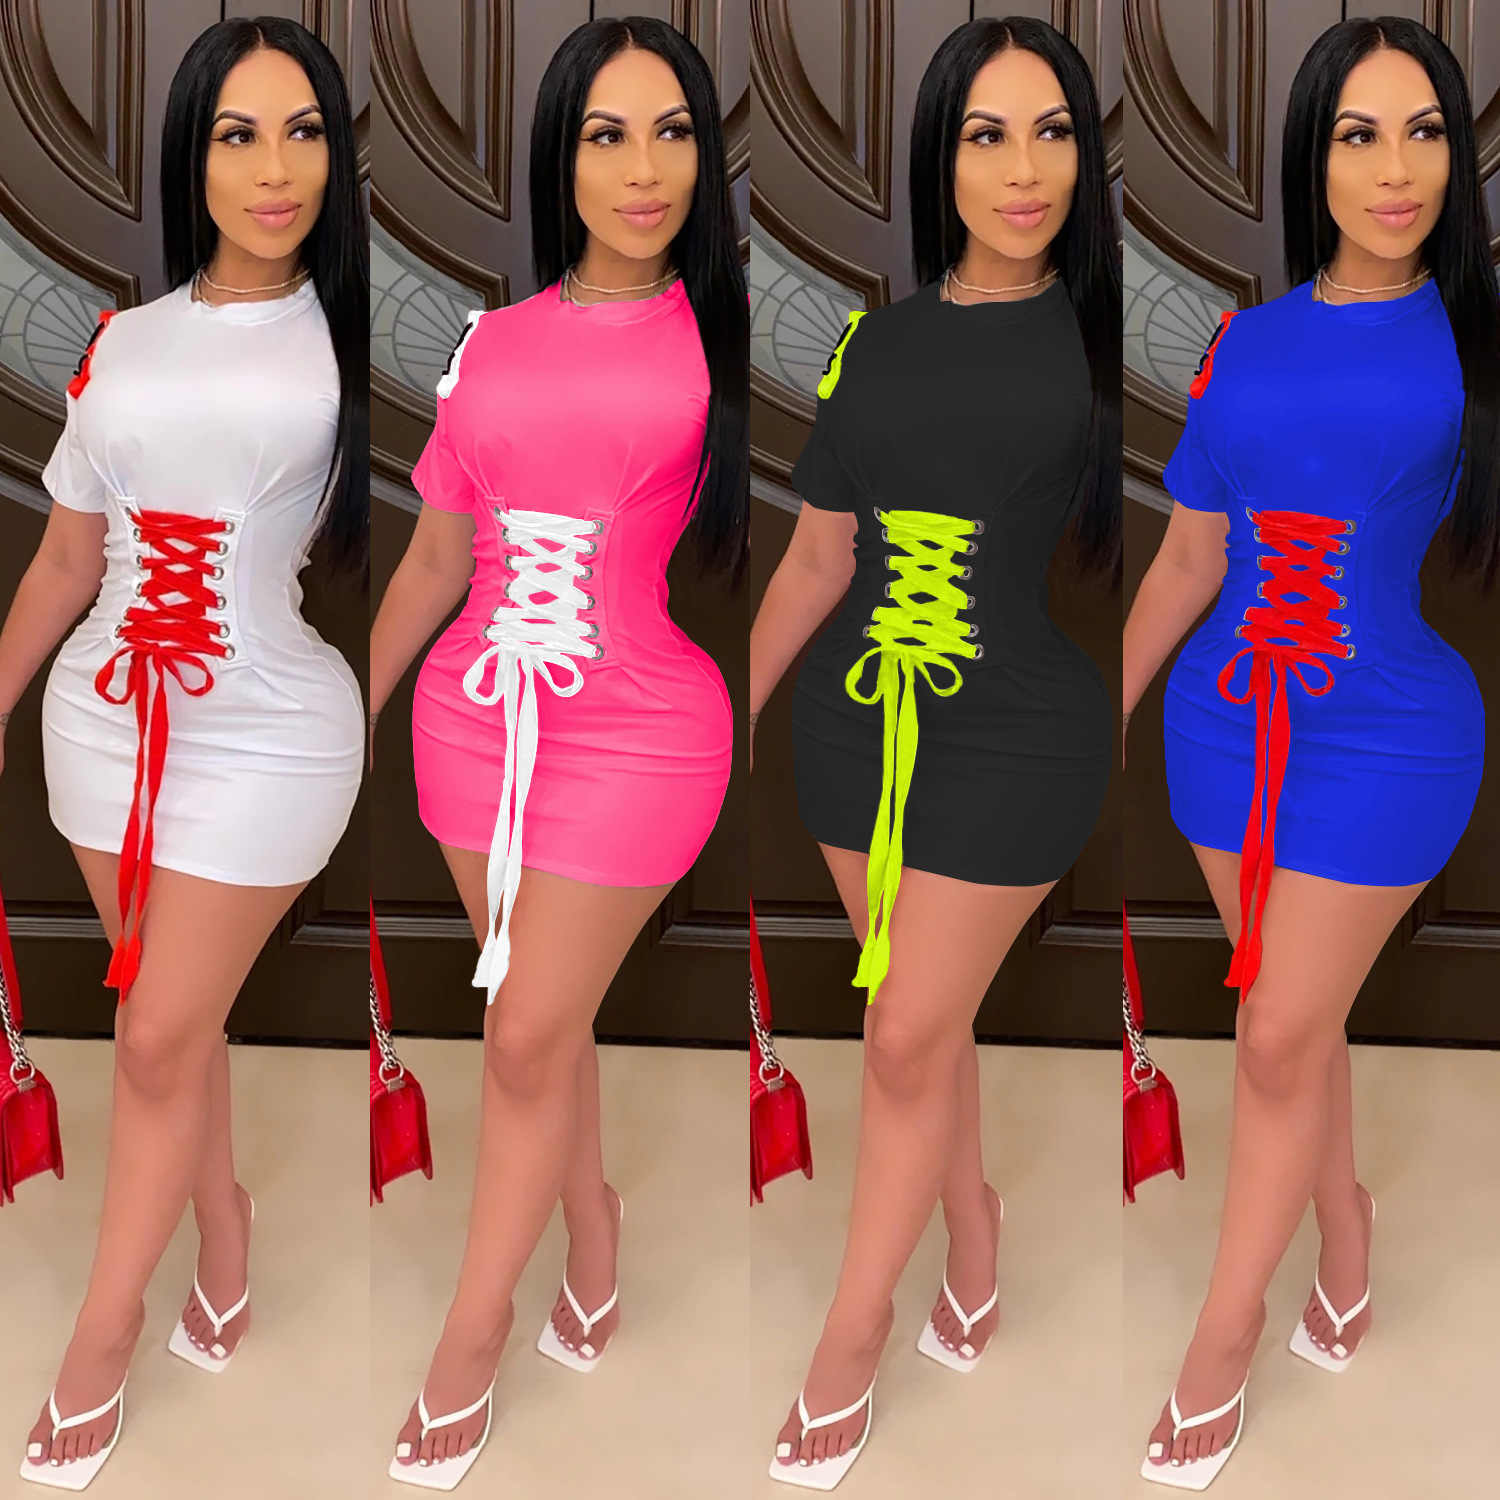 Zoctuo Solid Patchwork Sexy Bodycon Jurken Voor Vrouwen Korte Mouwen O-hals Party Sexy Mini Jurk 2020 Zomer Bandage Casual Dress